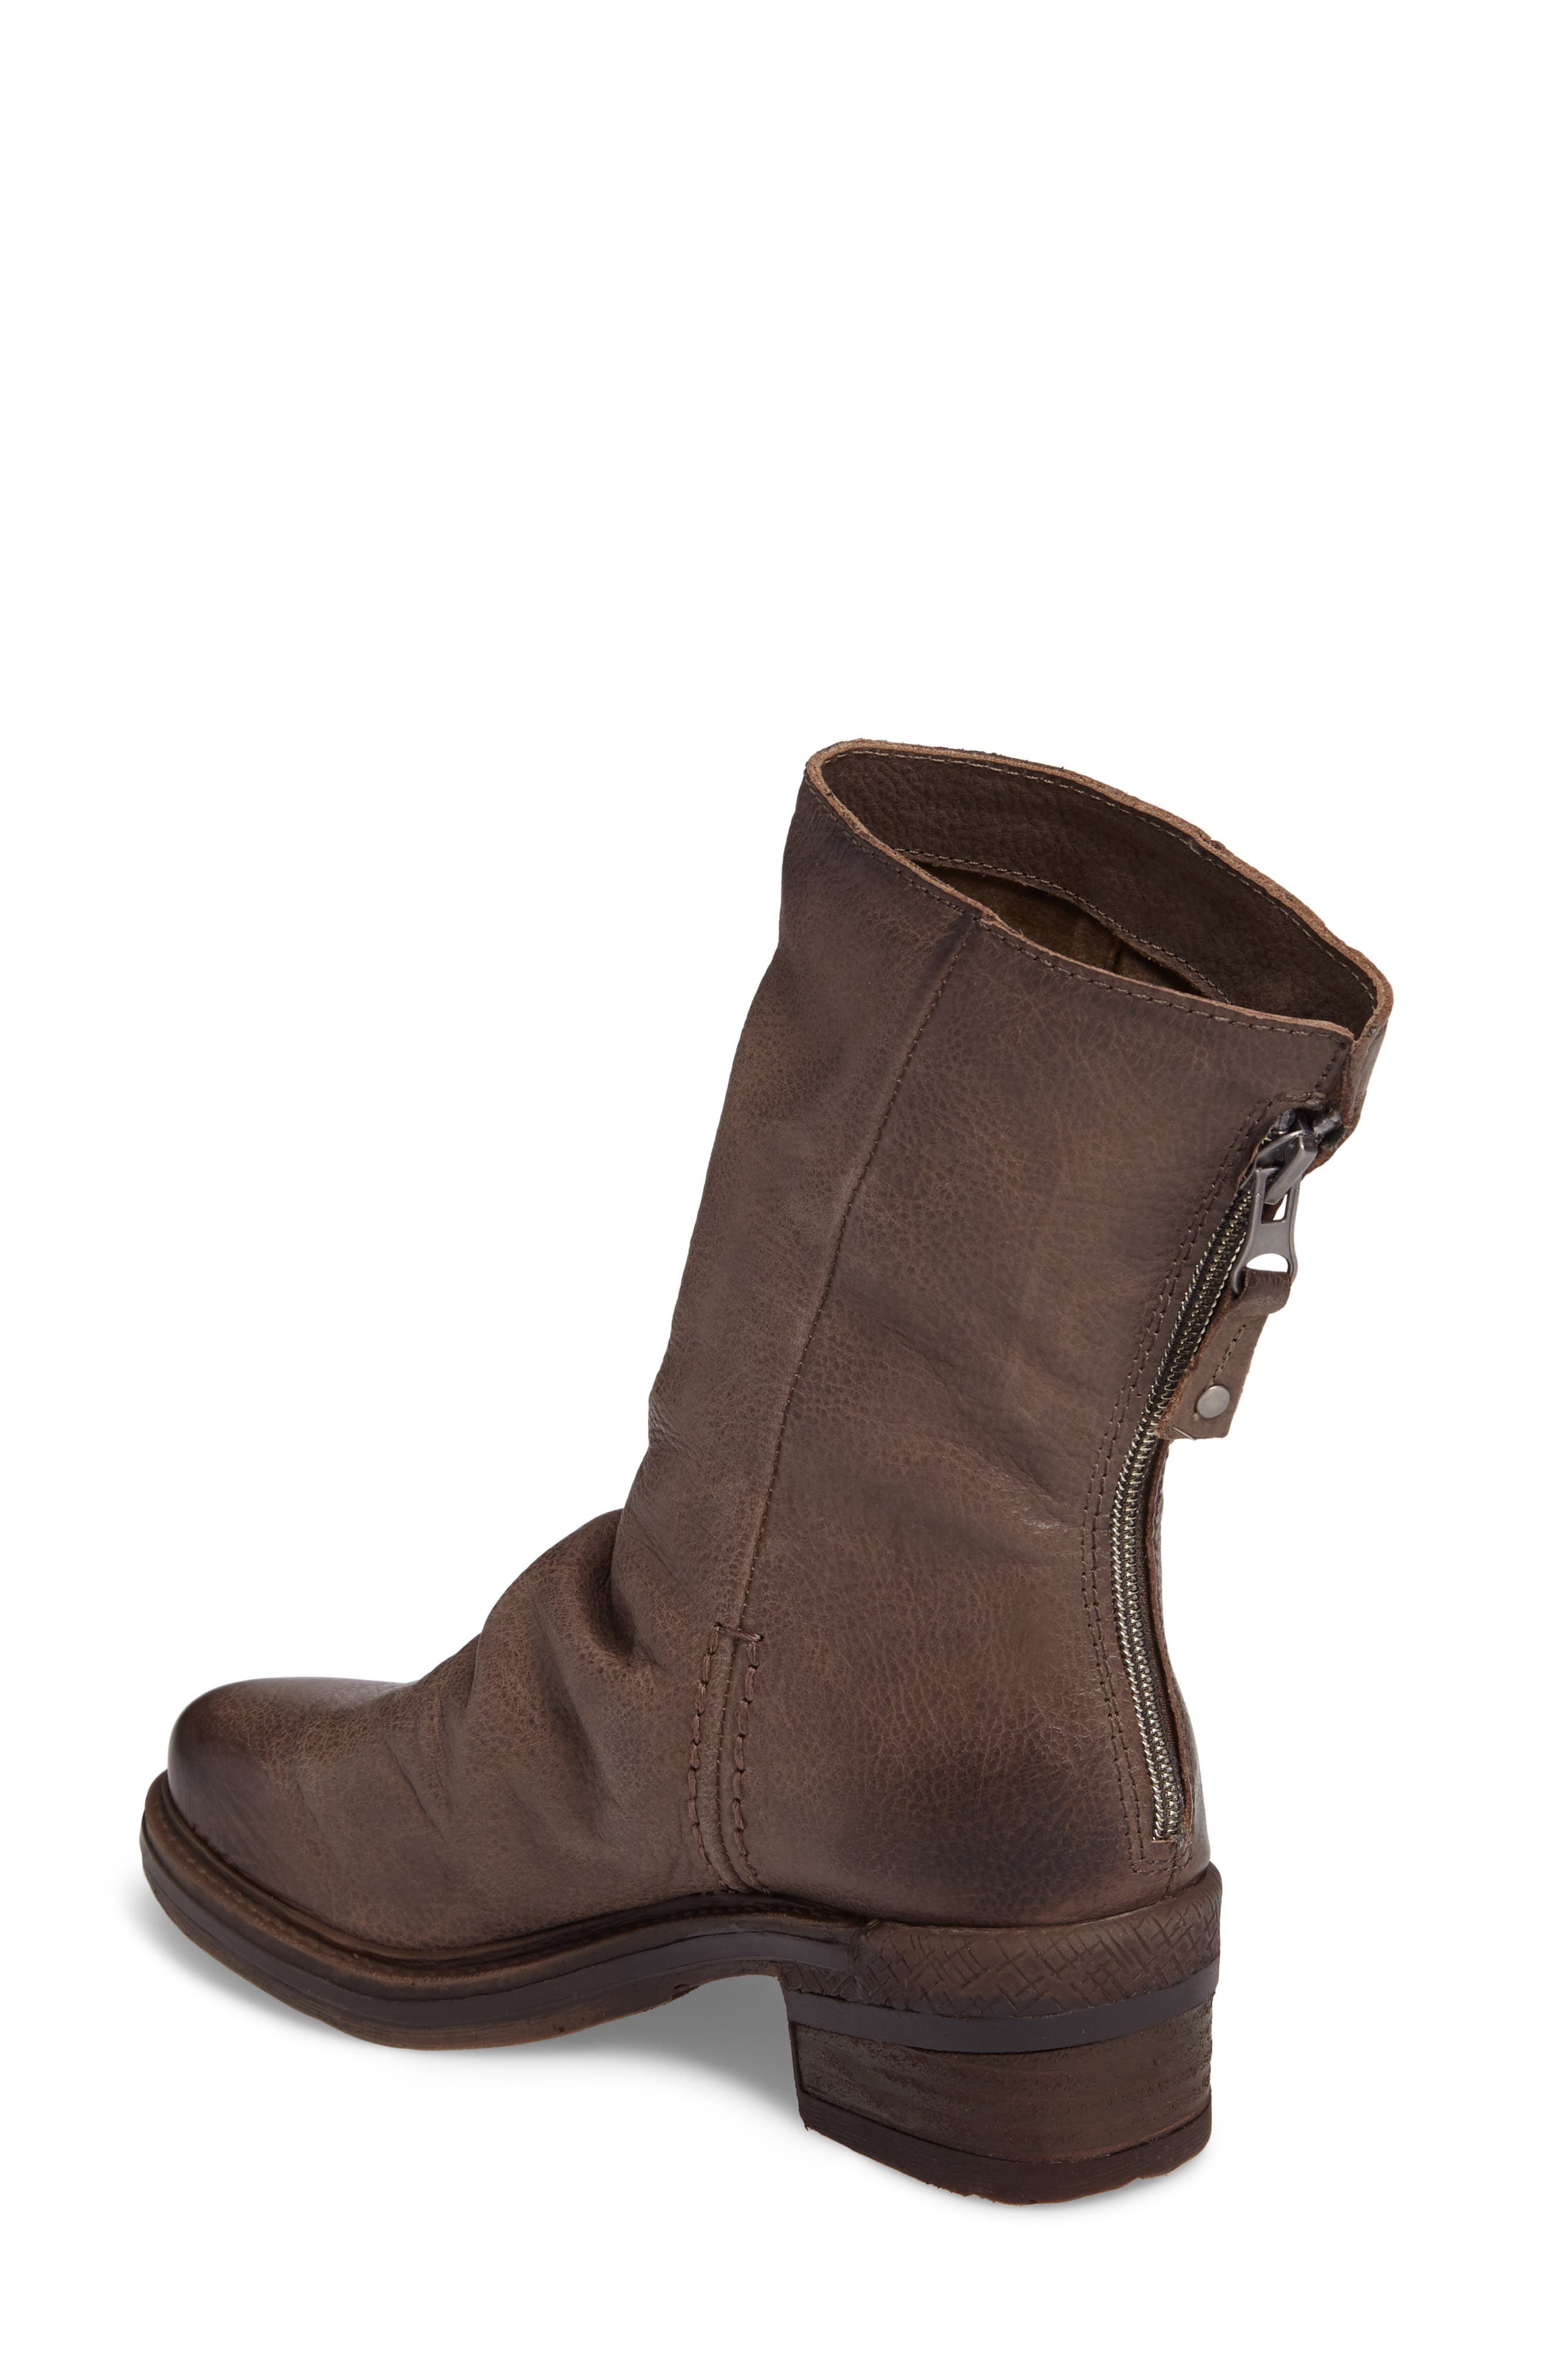 Fernweh Slouchy Bootie,                             Alternate thumbnail 2, color,                             Mint Leather